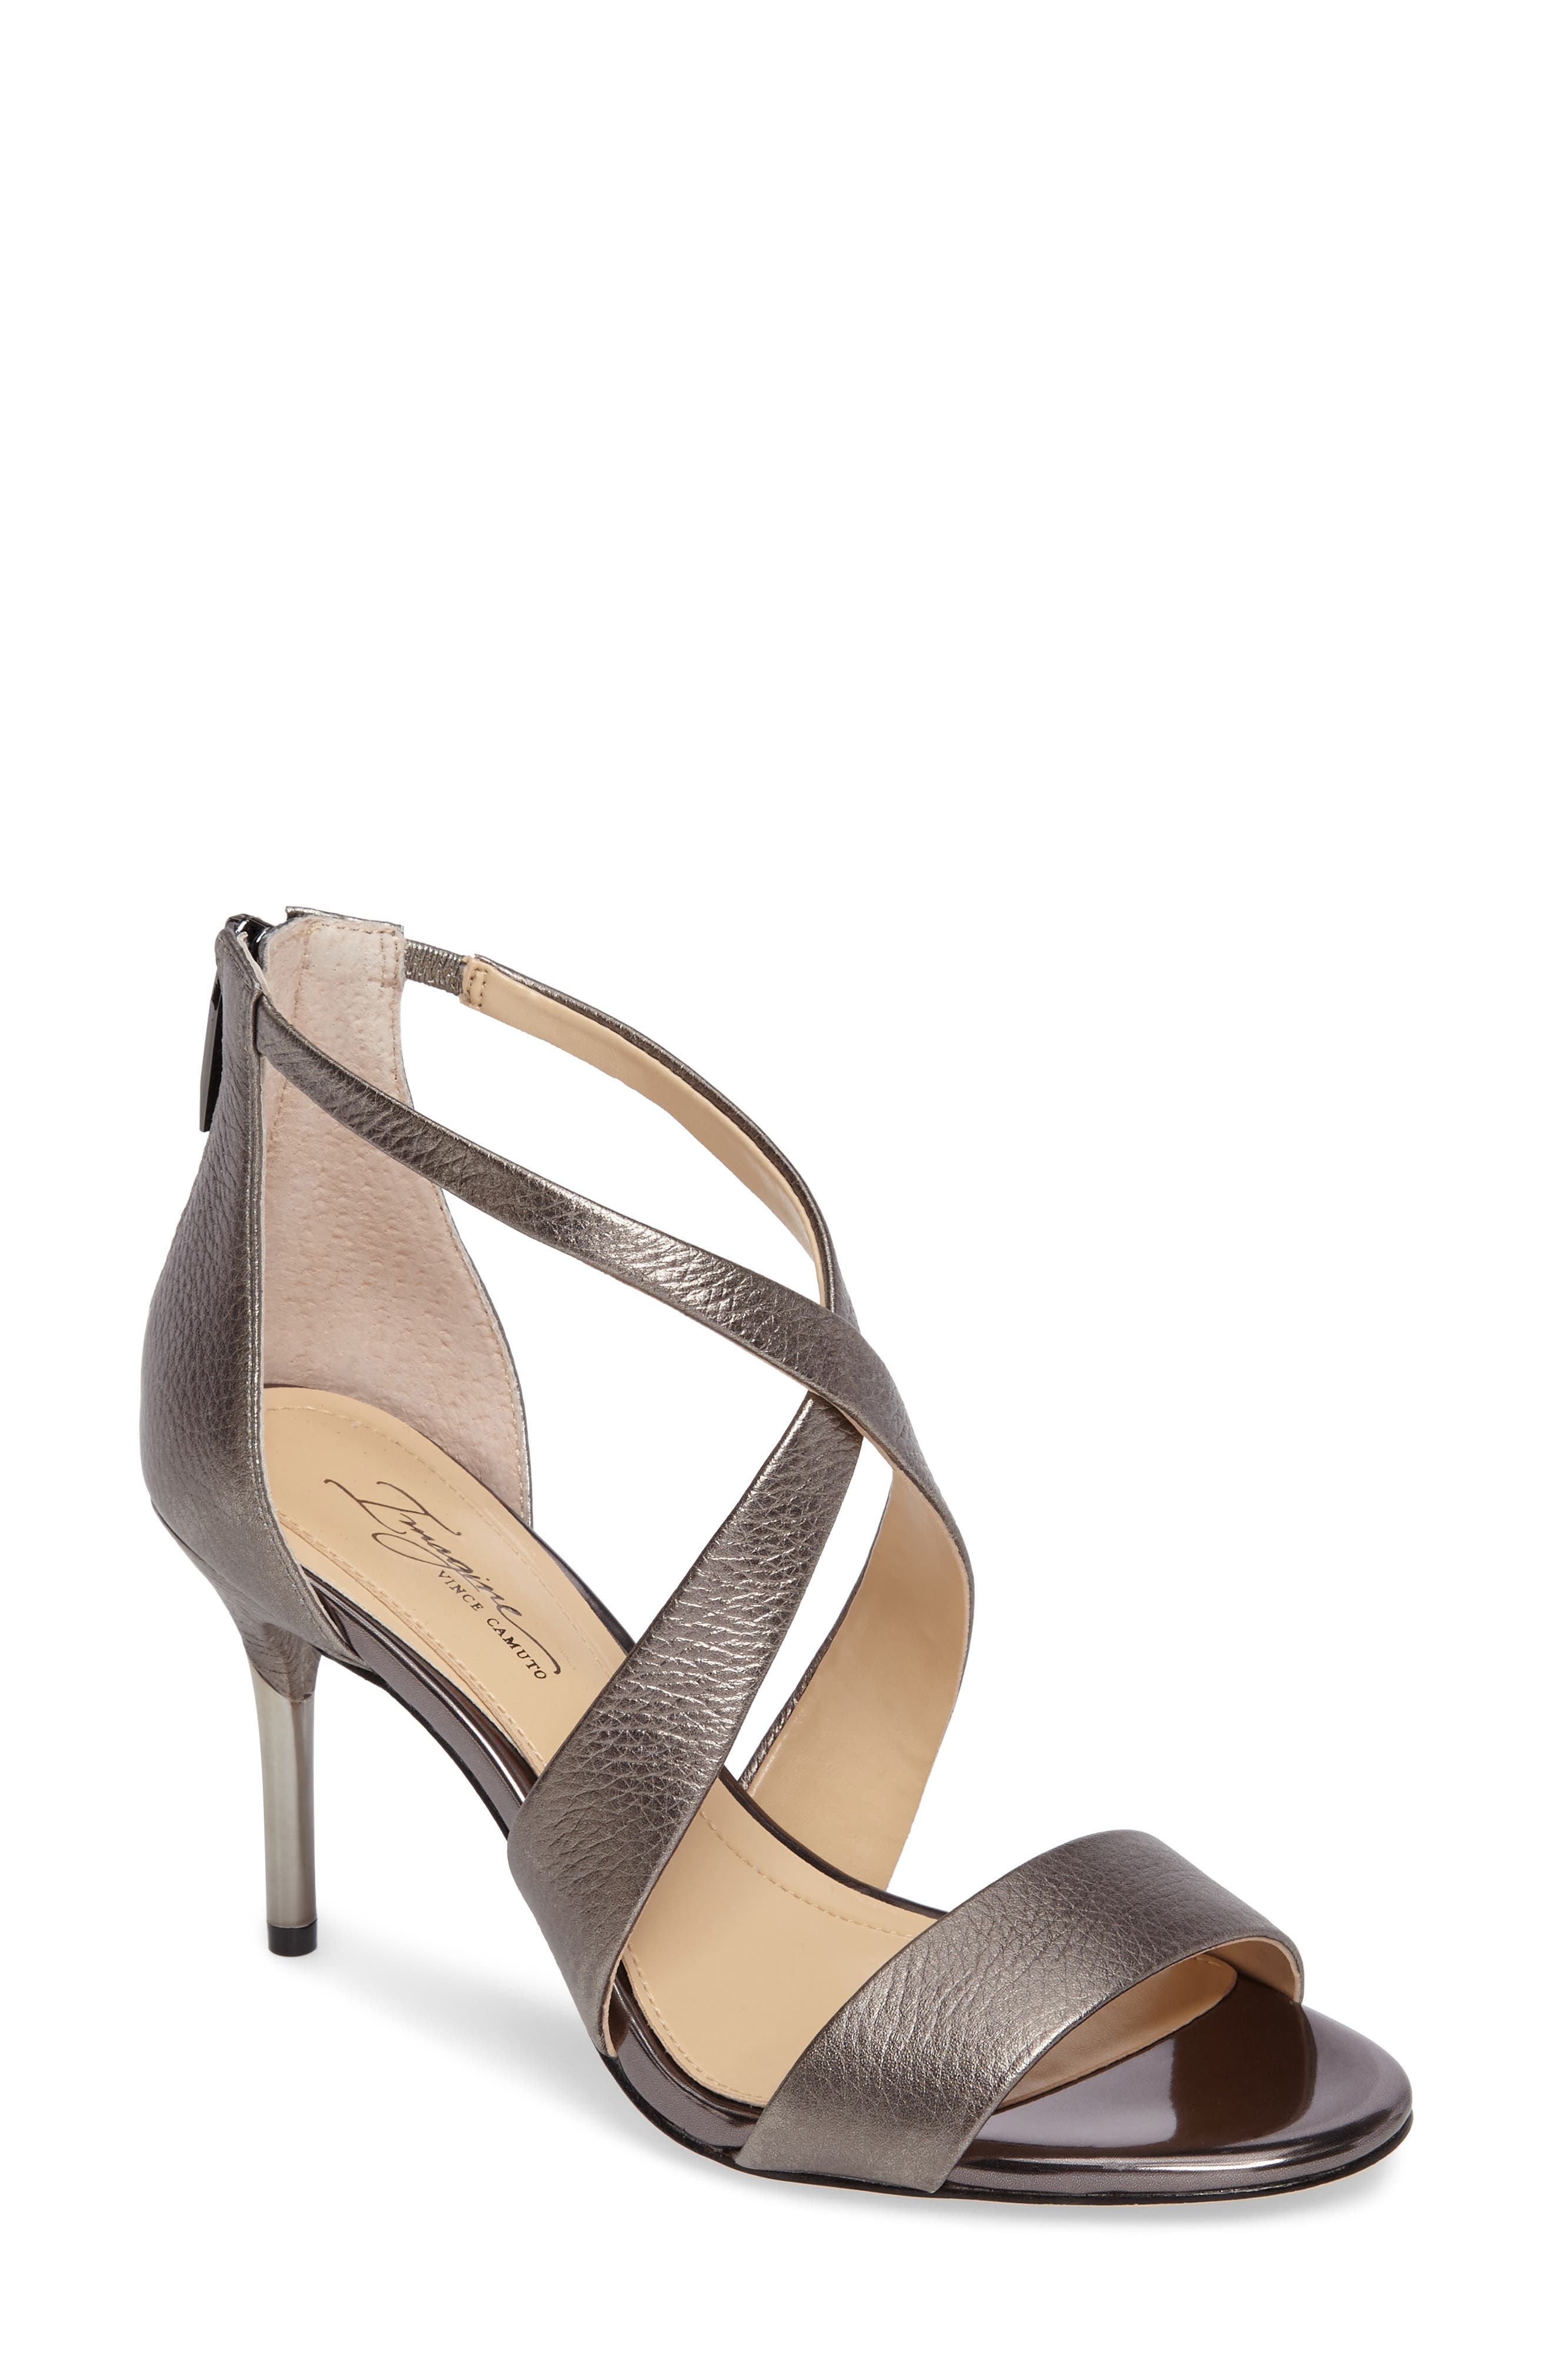 Alternate Image 1 Selected - Imagine by Vince Camuto 'Pascal 2' Strappy Evening Sandal (Women)